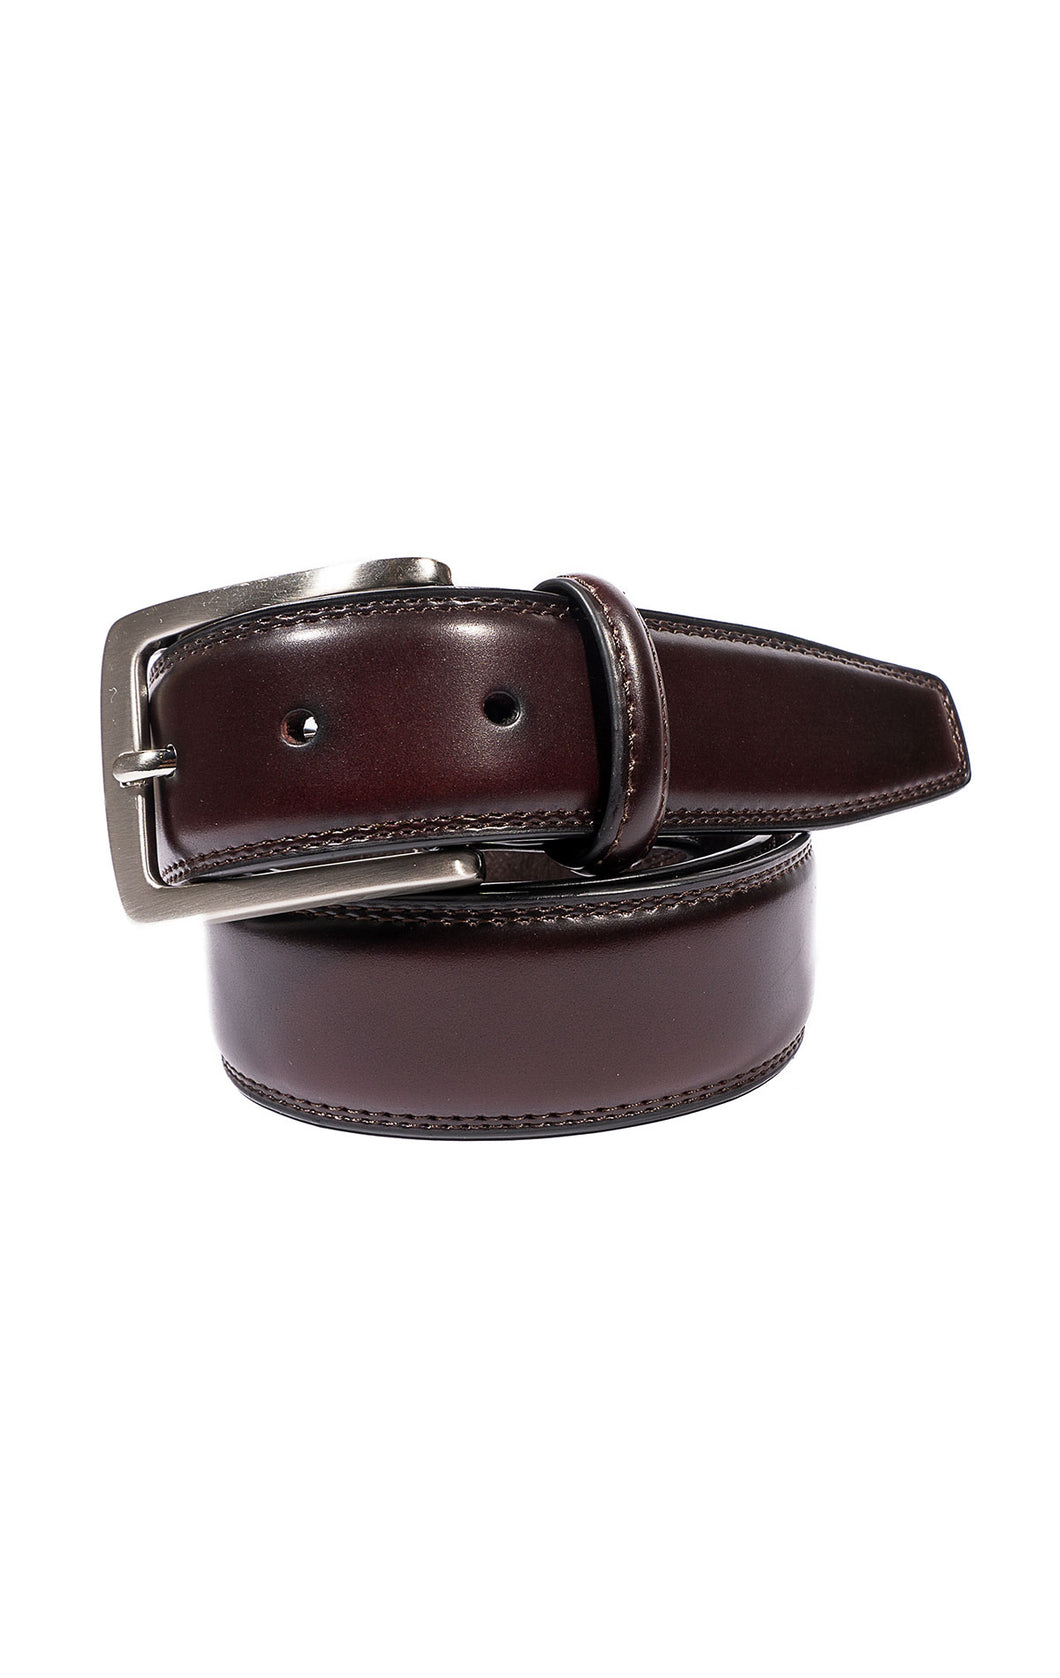 RK Burgundy Belt